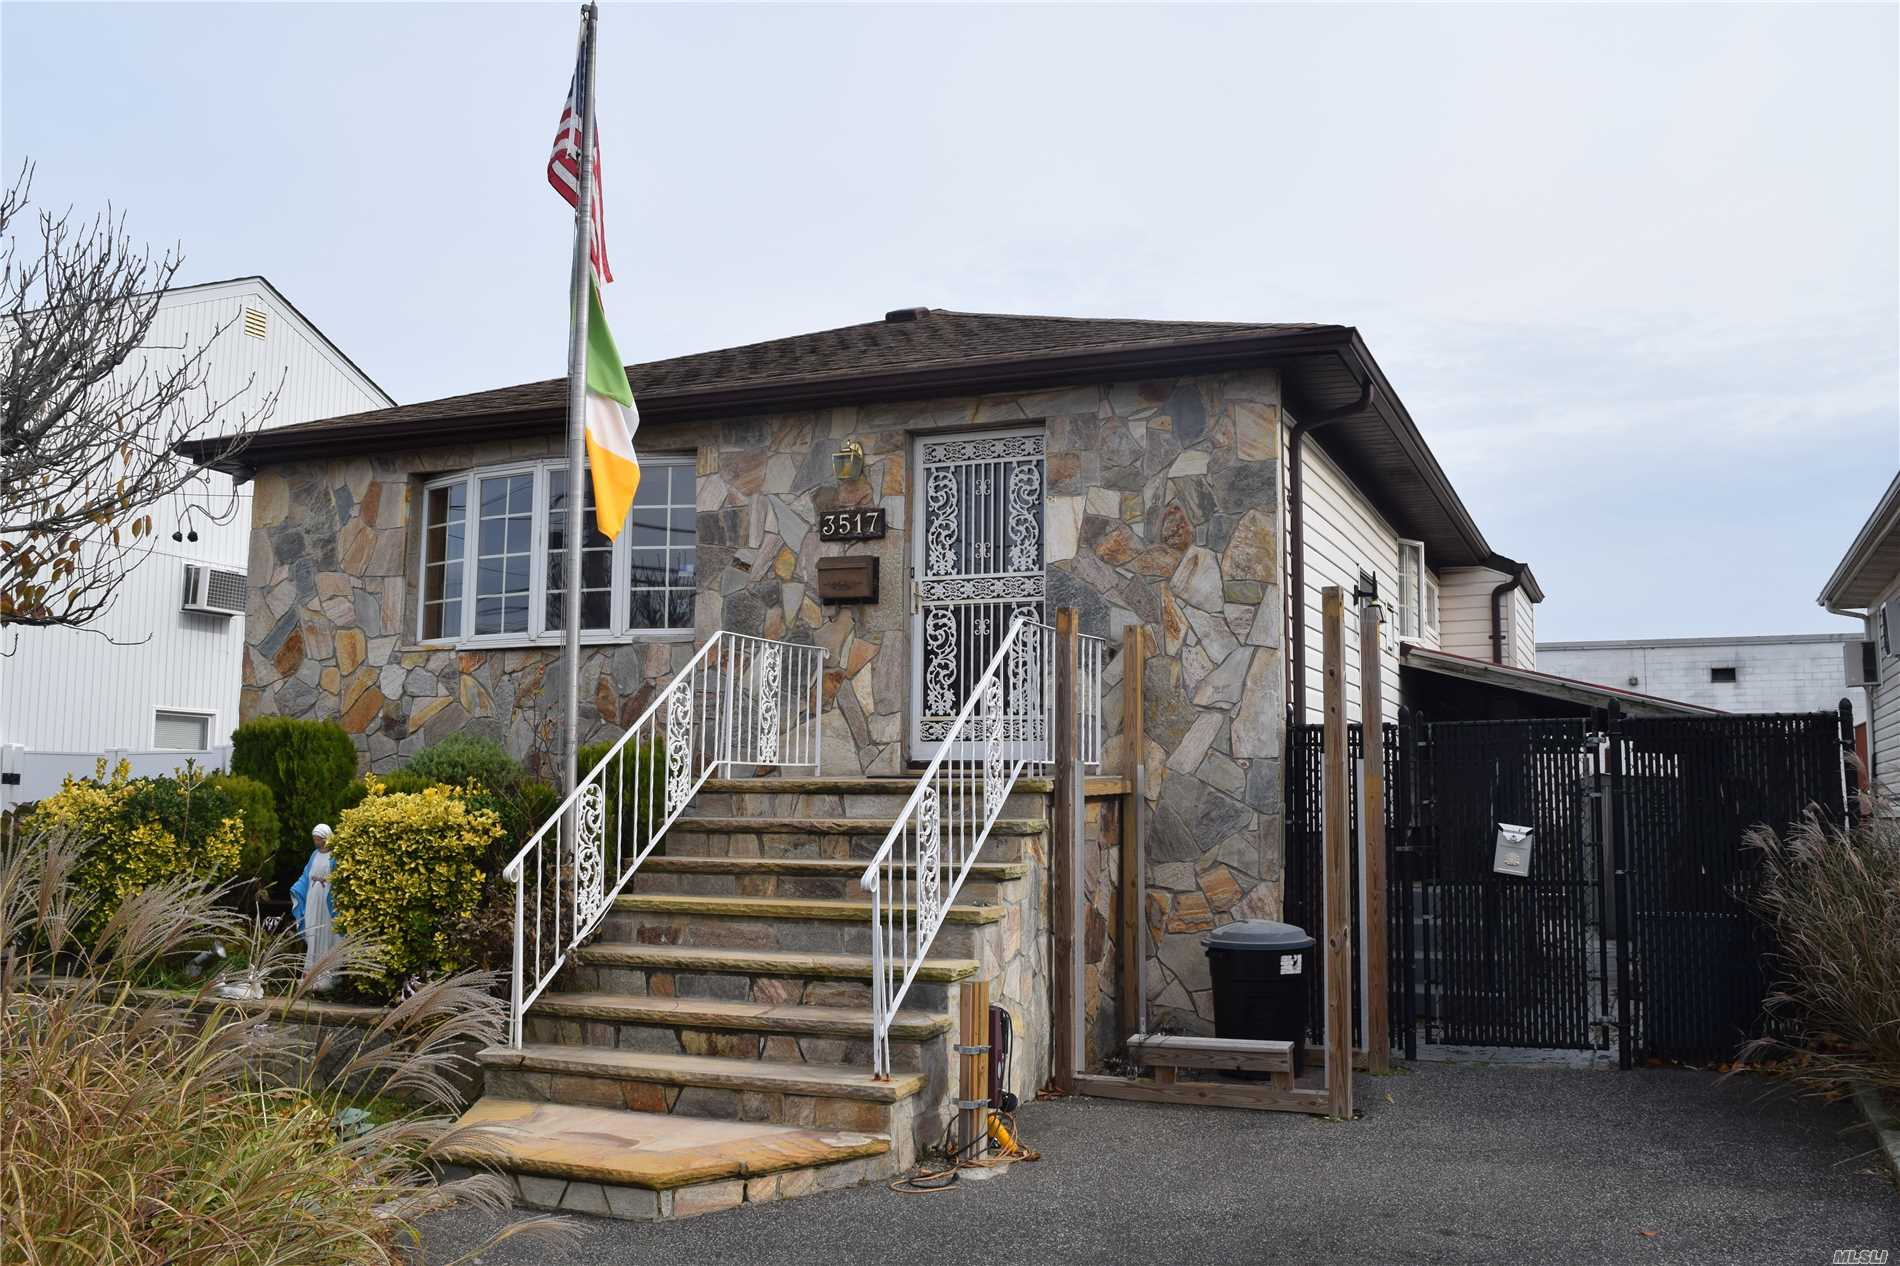 This New To The Market Beautiful Ocean Harbor Waterfront Home, Features Brand New Bulk Heading, Andersen Window Throughout, Including Huge Bay Window. All New Ceramic Tile, New Baths, Wood Floors, New Electrical, New Washer/Dryer, Sliders Out To Rear Deck, Under Ground Sprinklers, Stone Front, Full Finished Basement W/Tons Of Storage.To Much To List. A Must See.